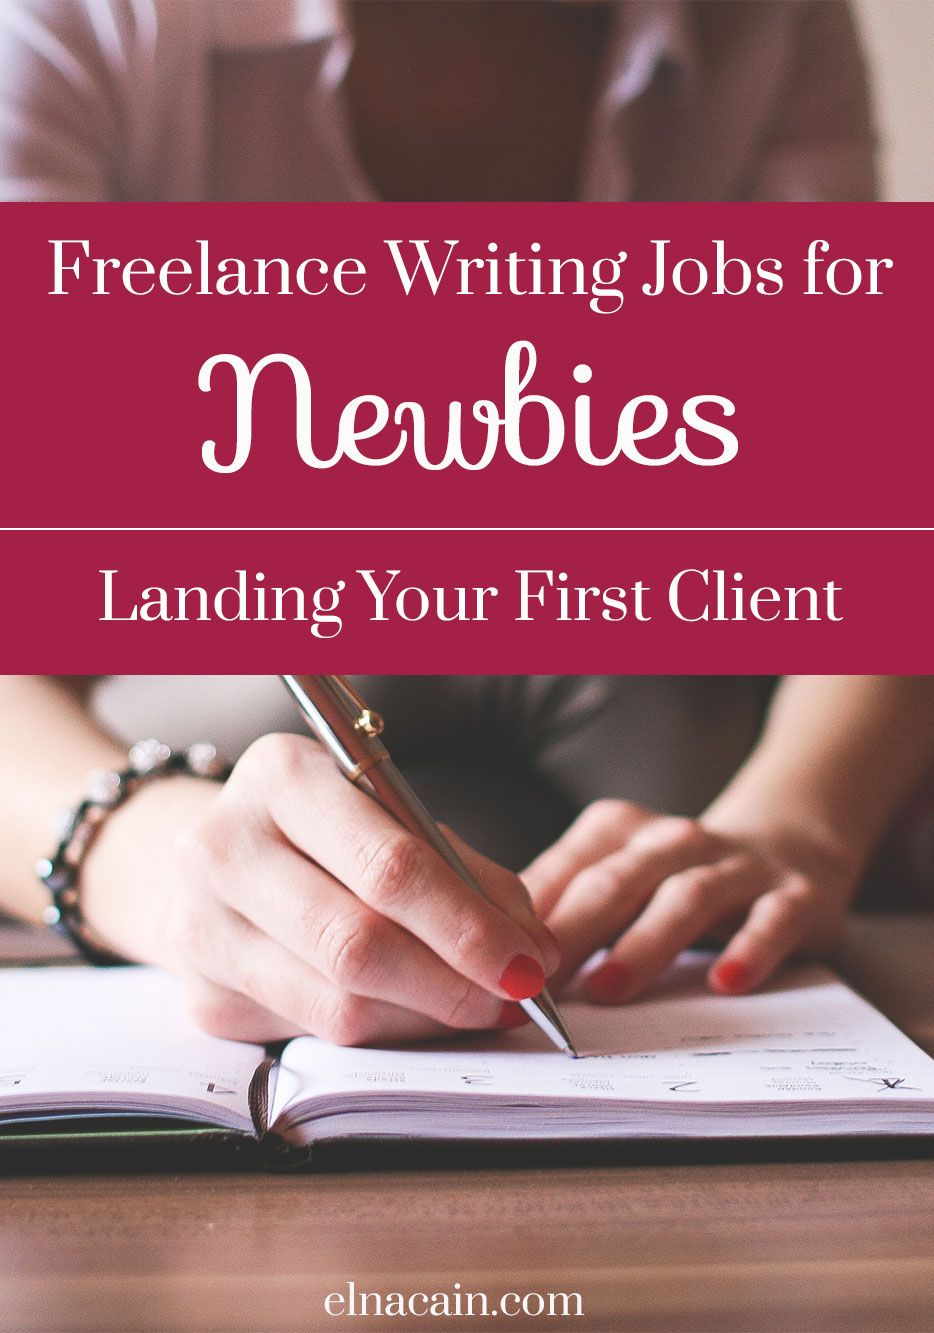 002 Freelance Writing Jobs for Newbies Landing Your First